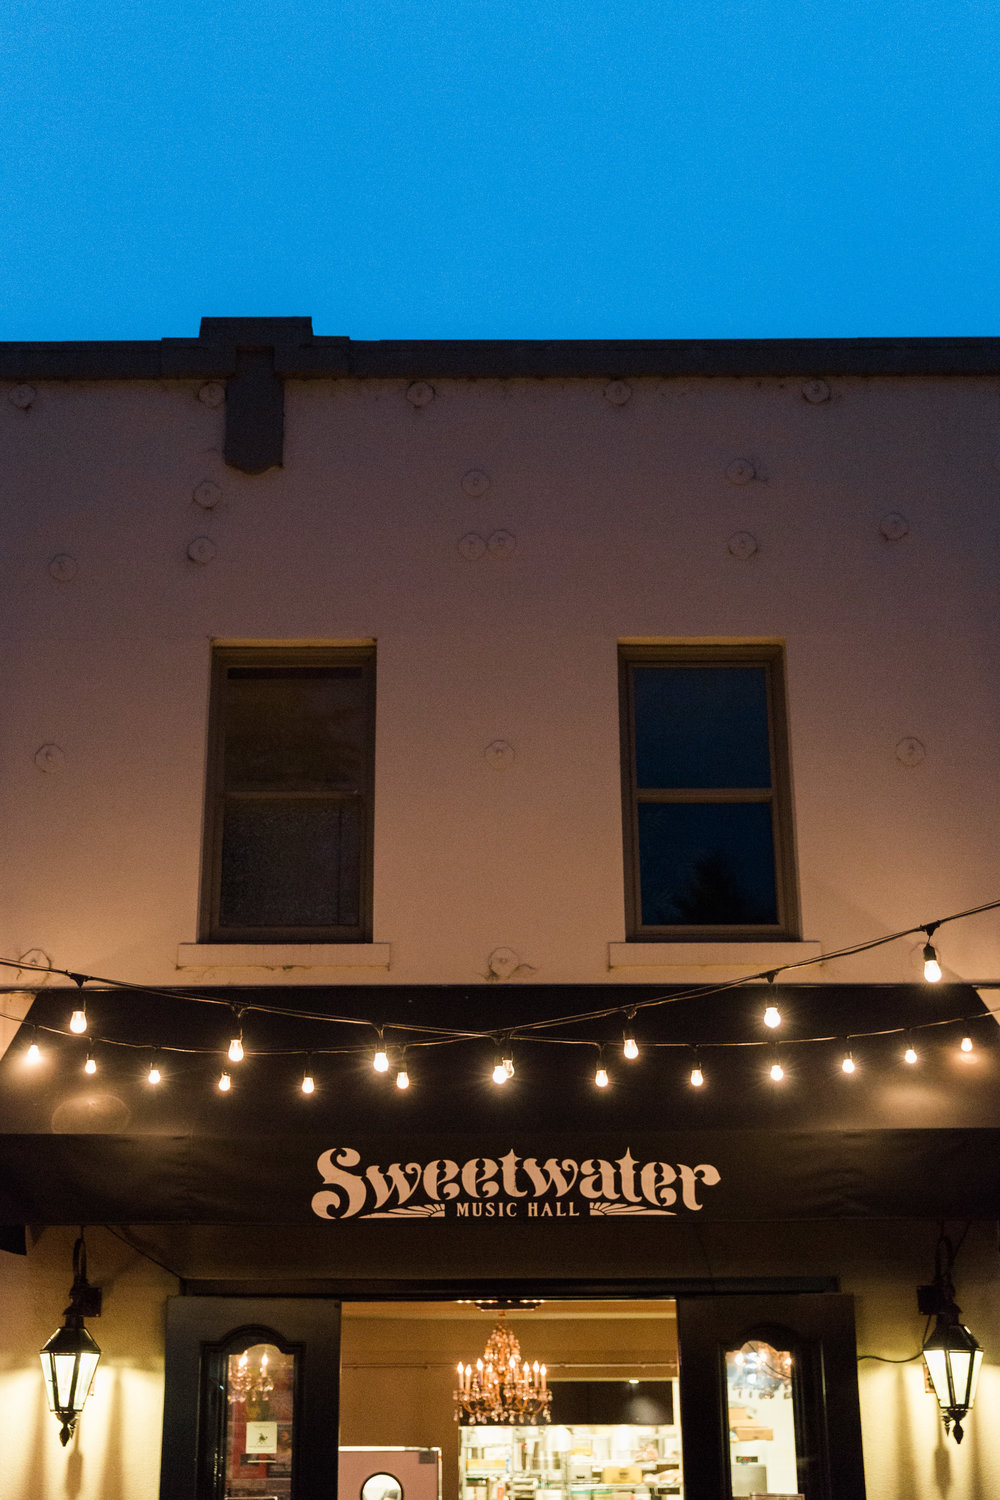 Wedding reception held at the Sweetwater Music Hall in Mill Valley